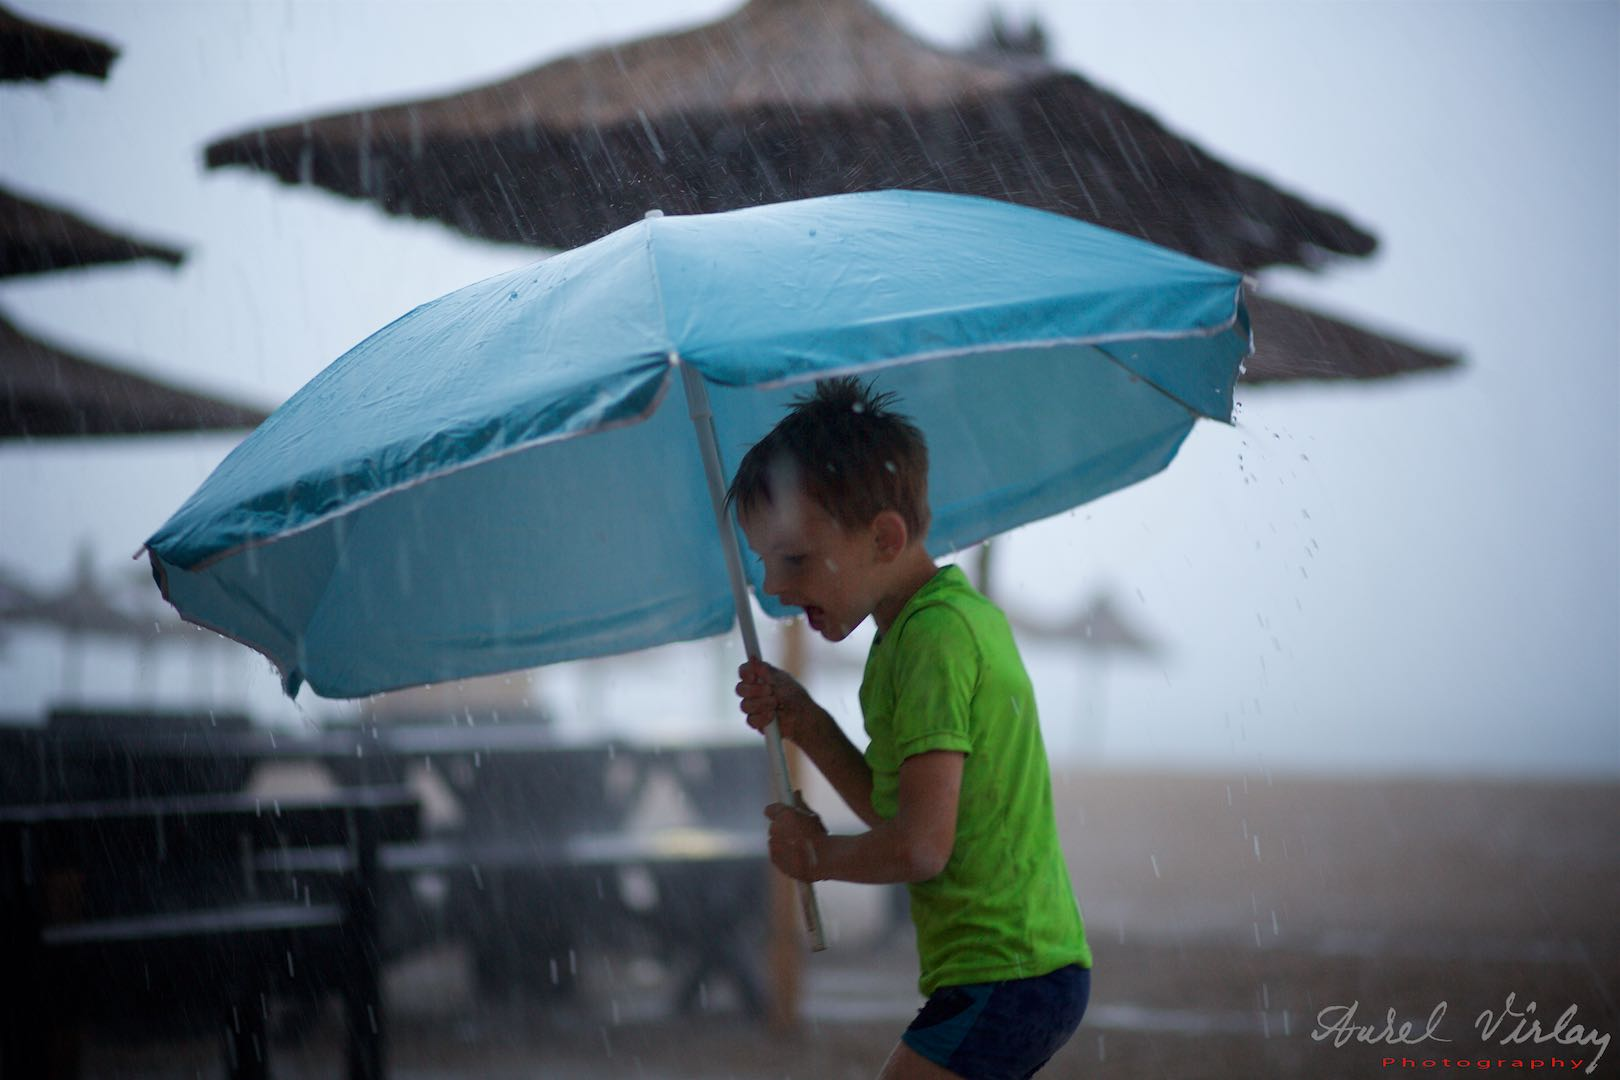 The most daring boy with a beautiful blue umbrella ... just like the photographer's soul.